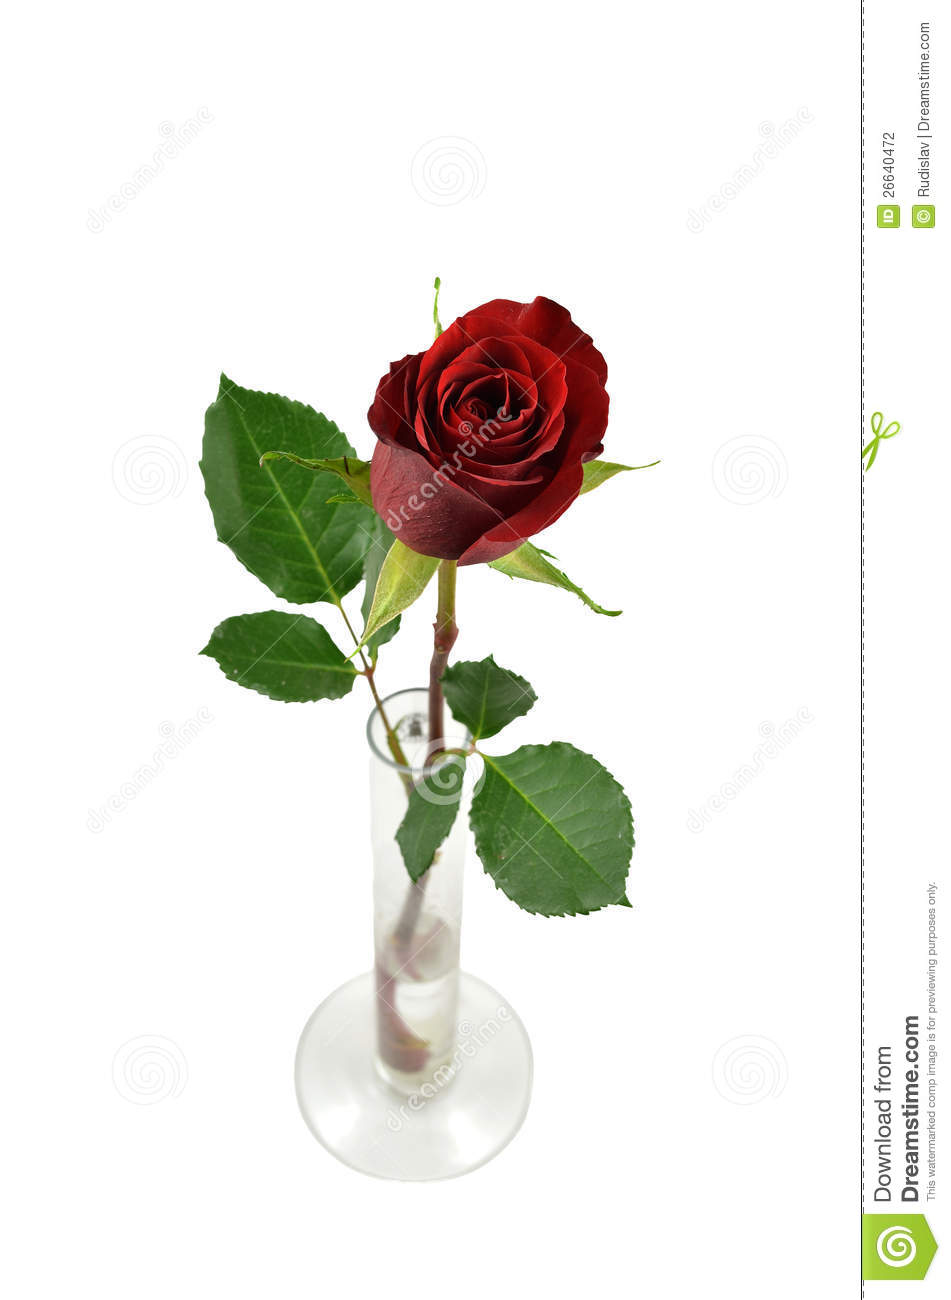 Red rose in a vase stock photo image of single rose 26640472 red rose in a vase floridaeventfo Choice Image